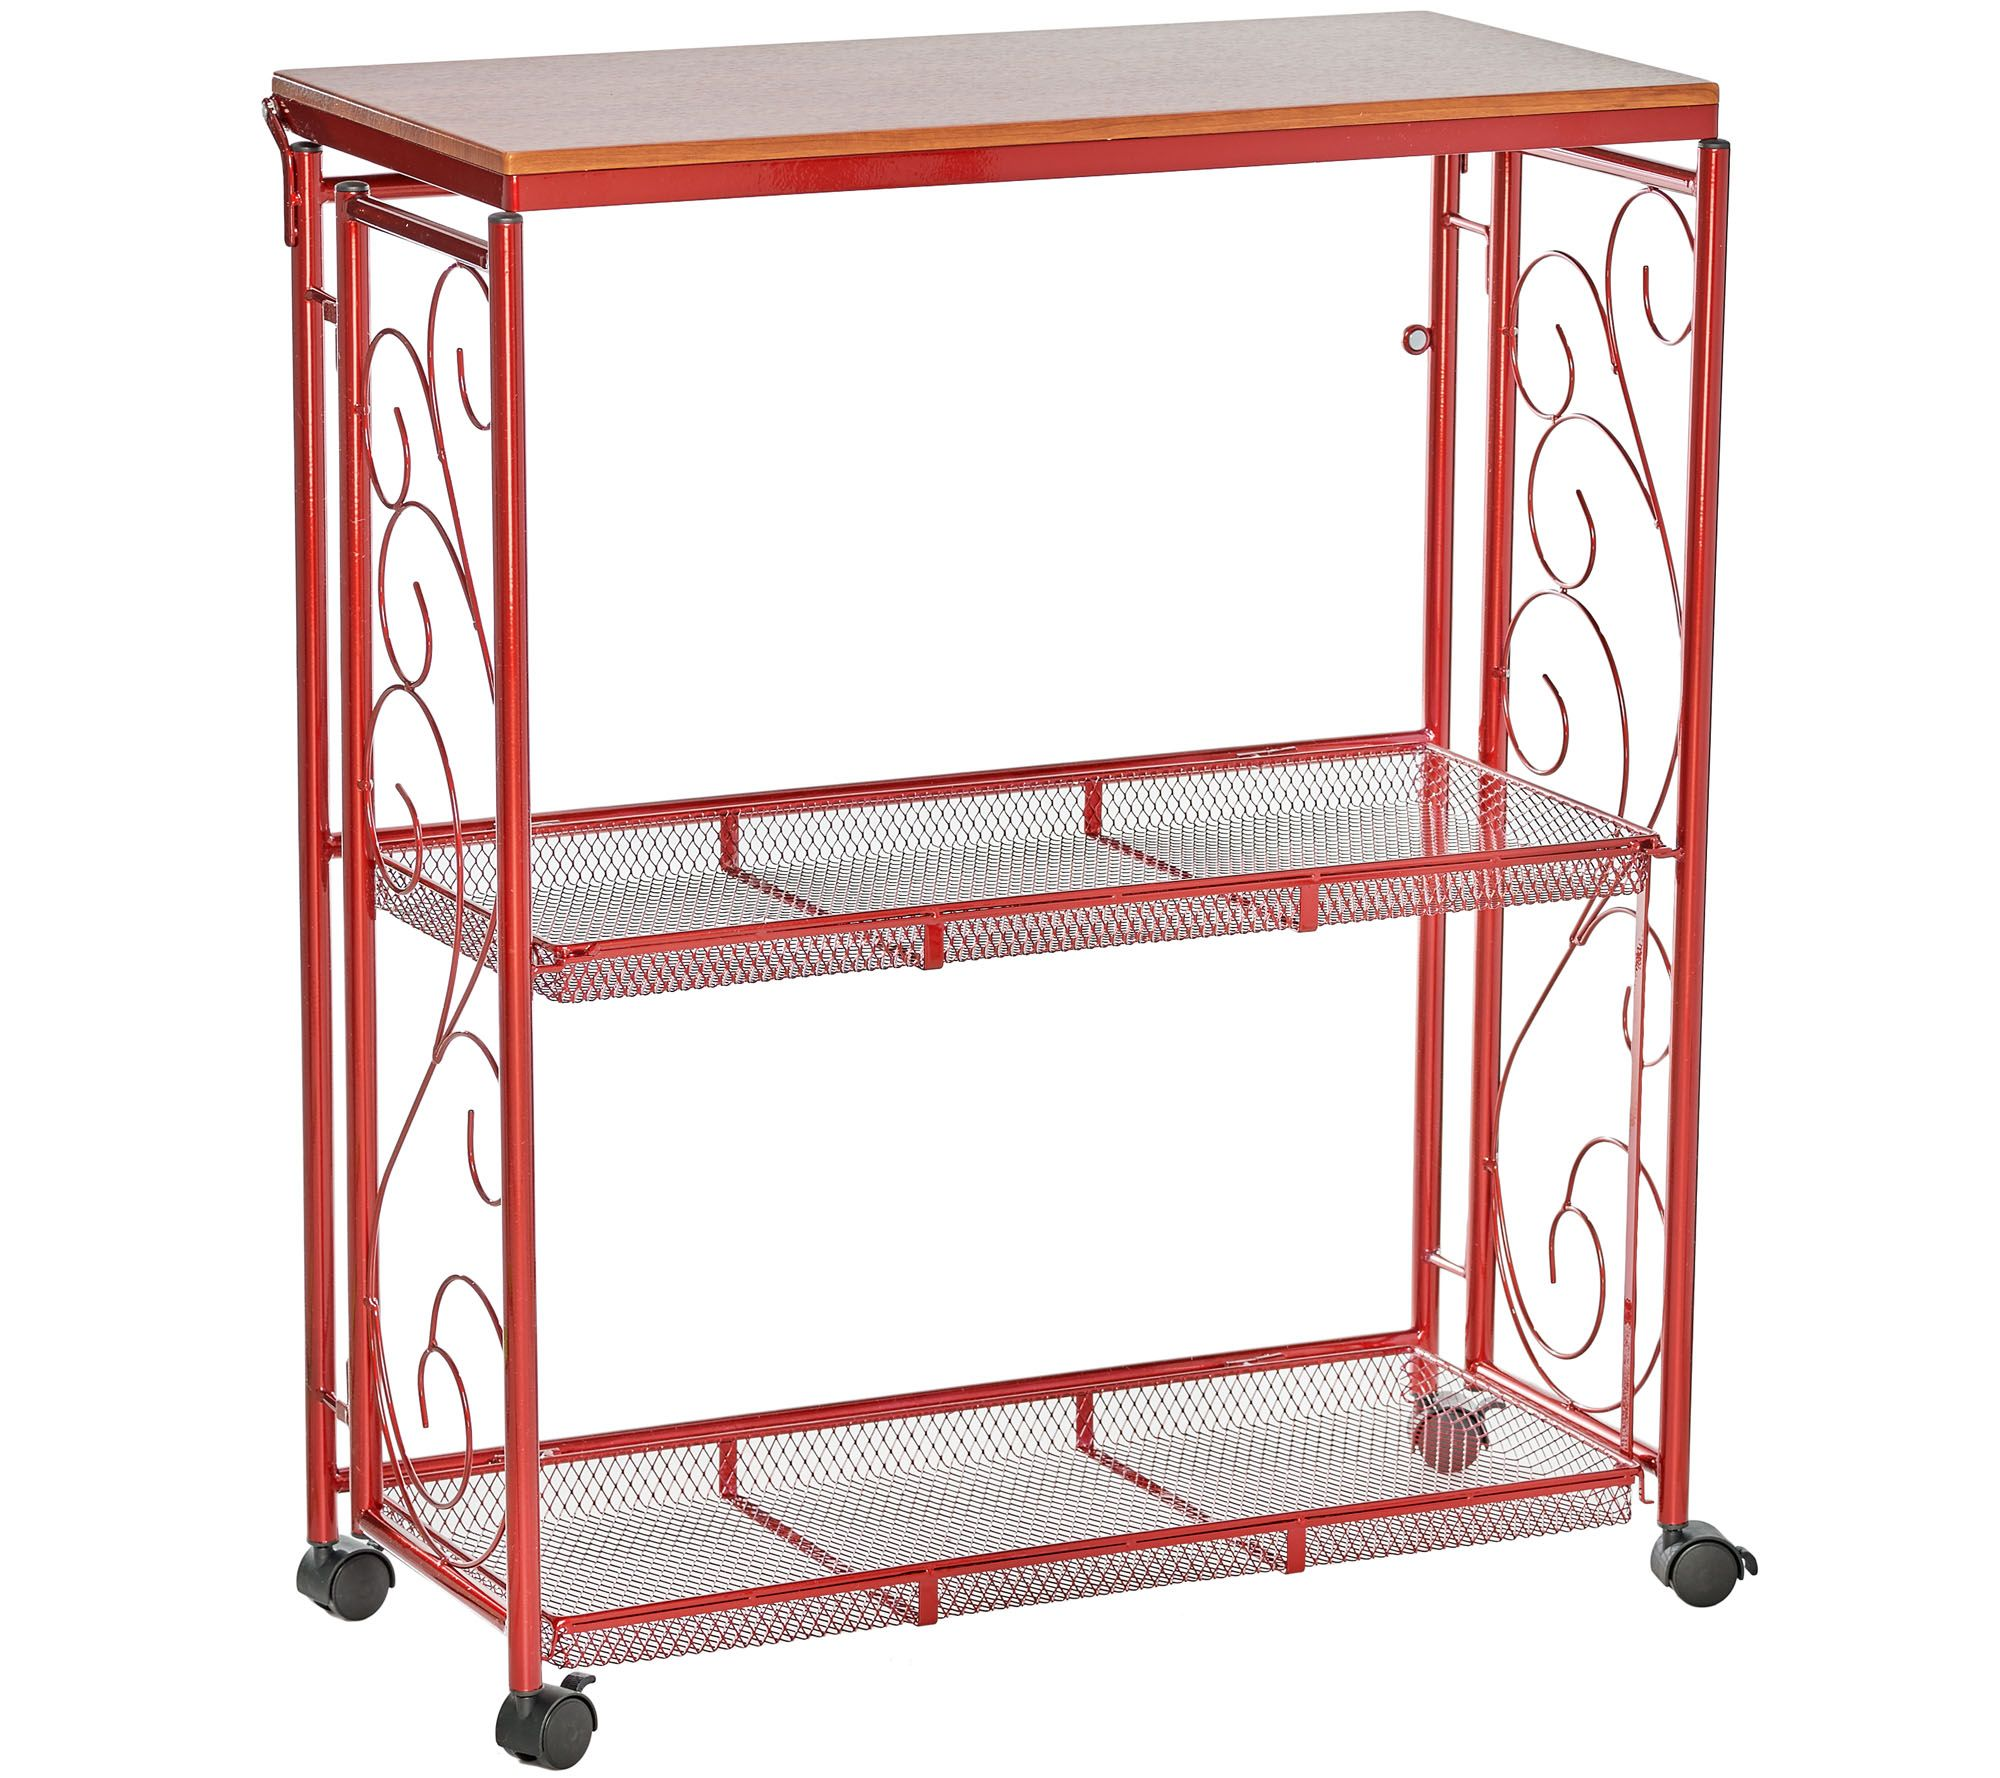 Kitchen Carts — Storage & Organization — Kitchen & Food — QVC